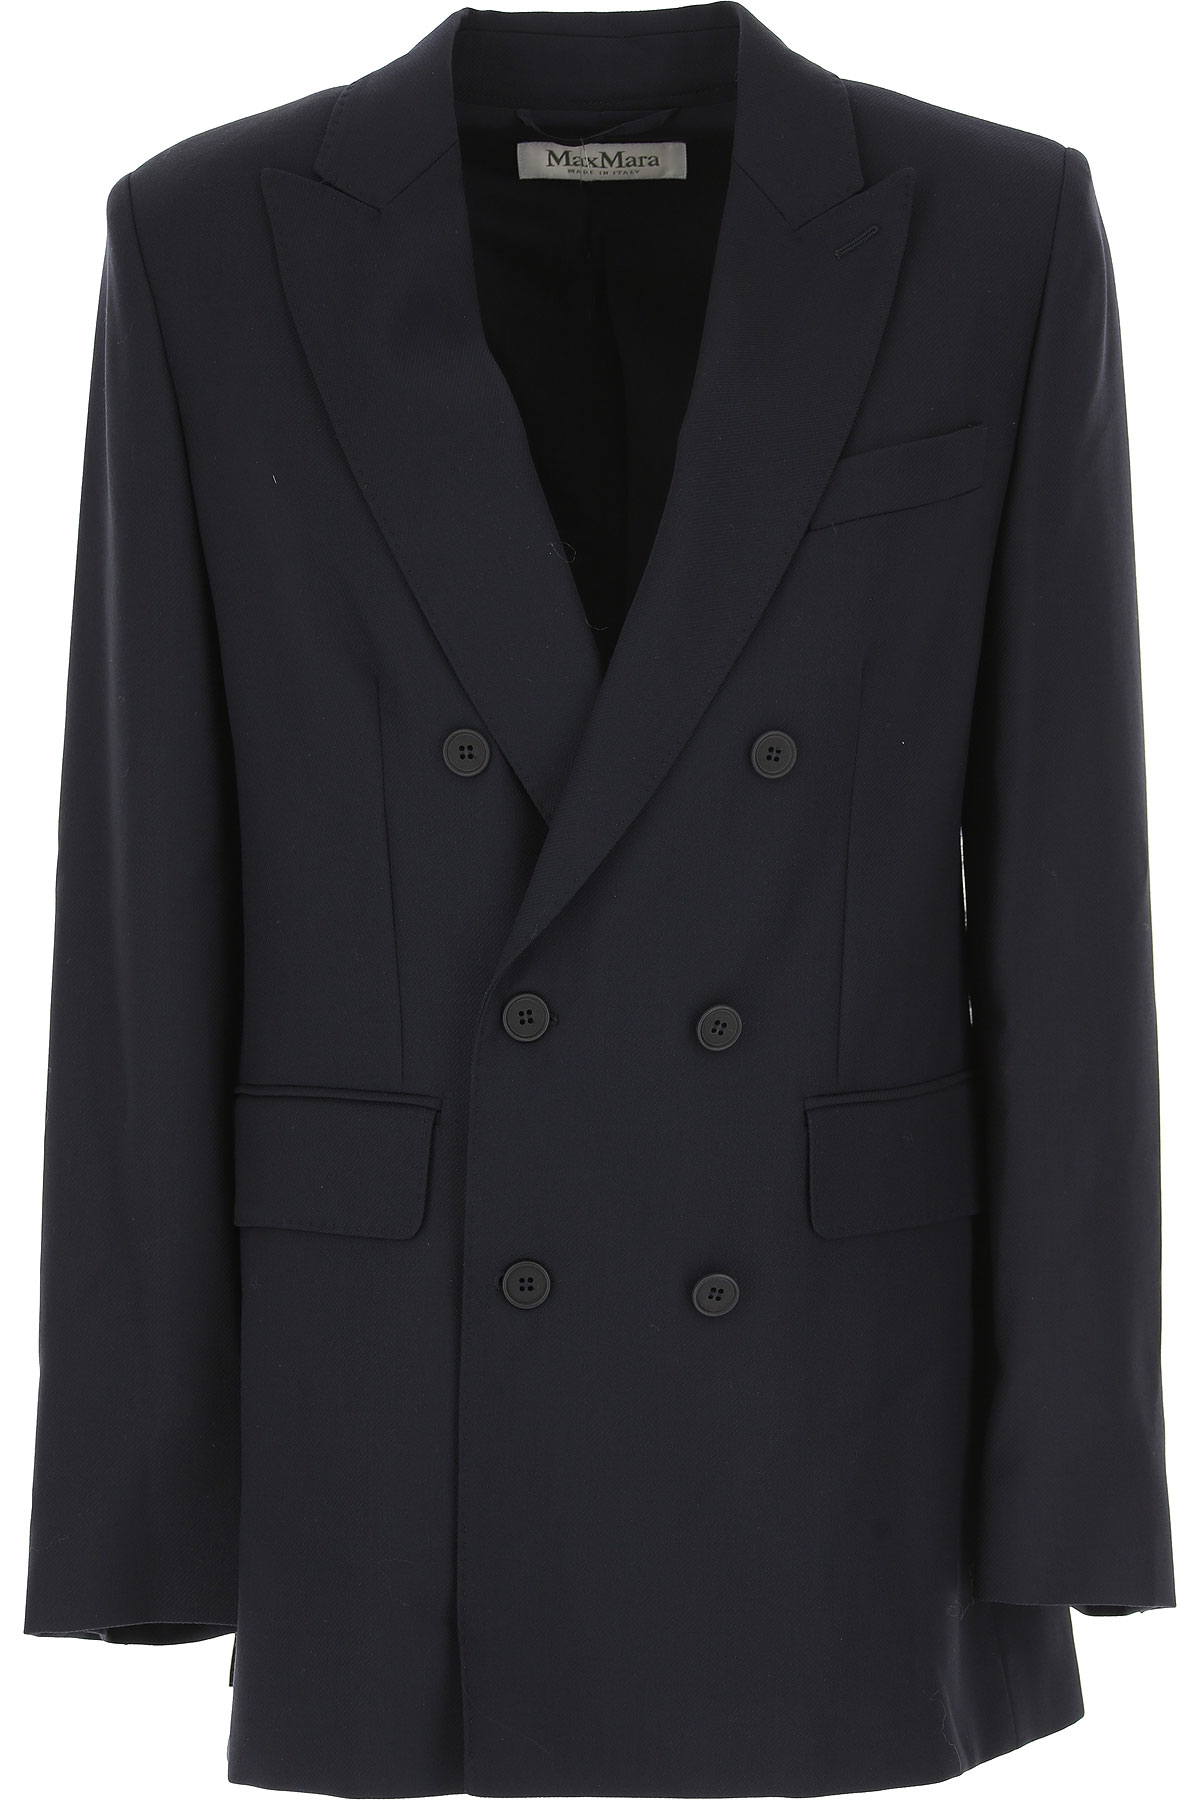 Image of Weekend by Max Mara Blazer for Women, Blue Navy, Wool, 2017, 4 6